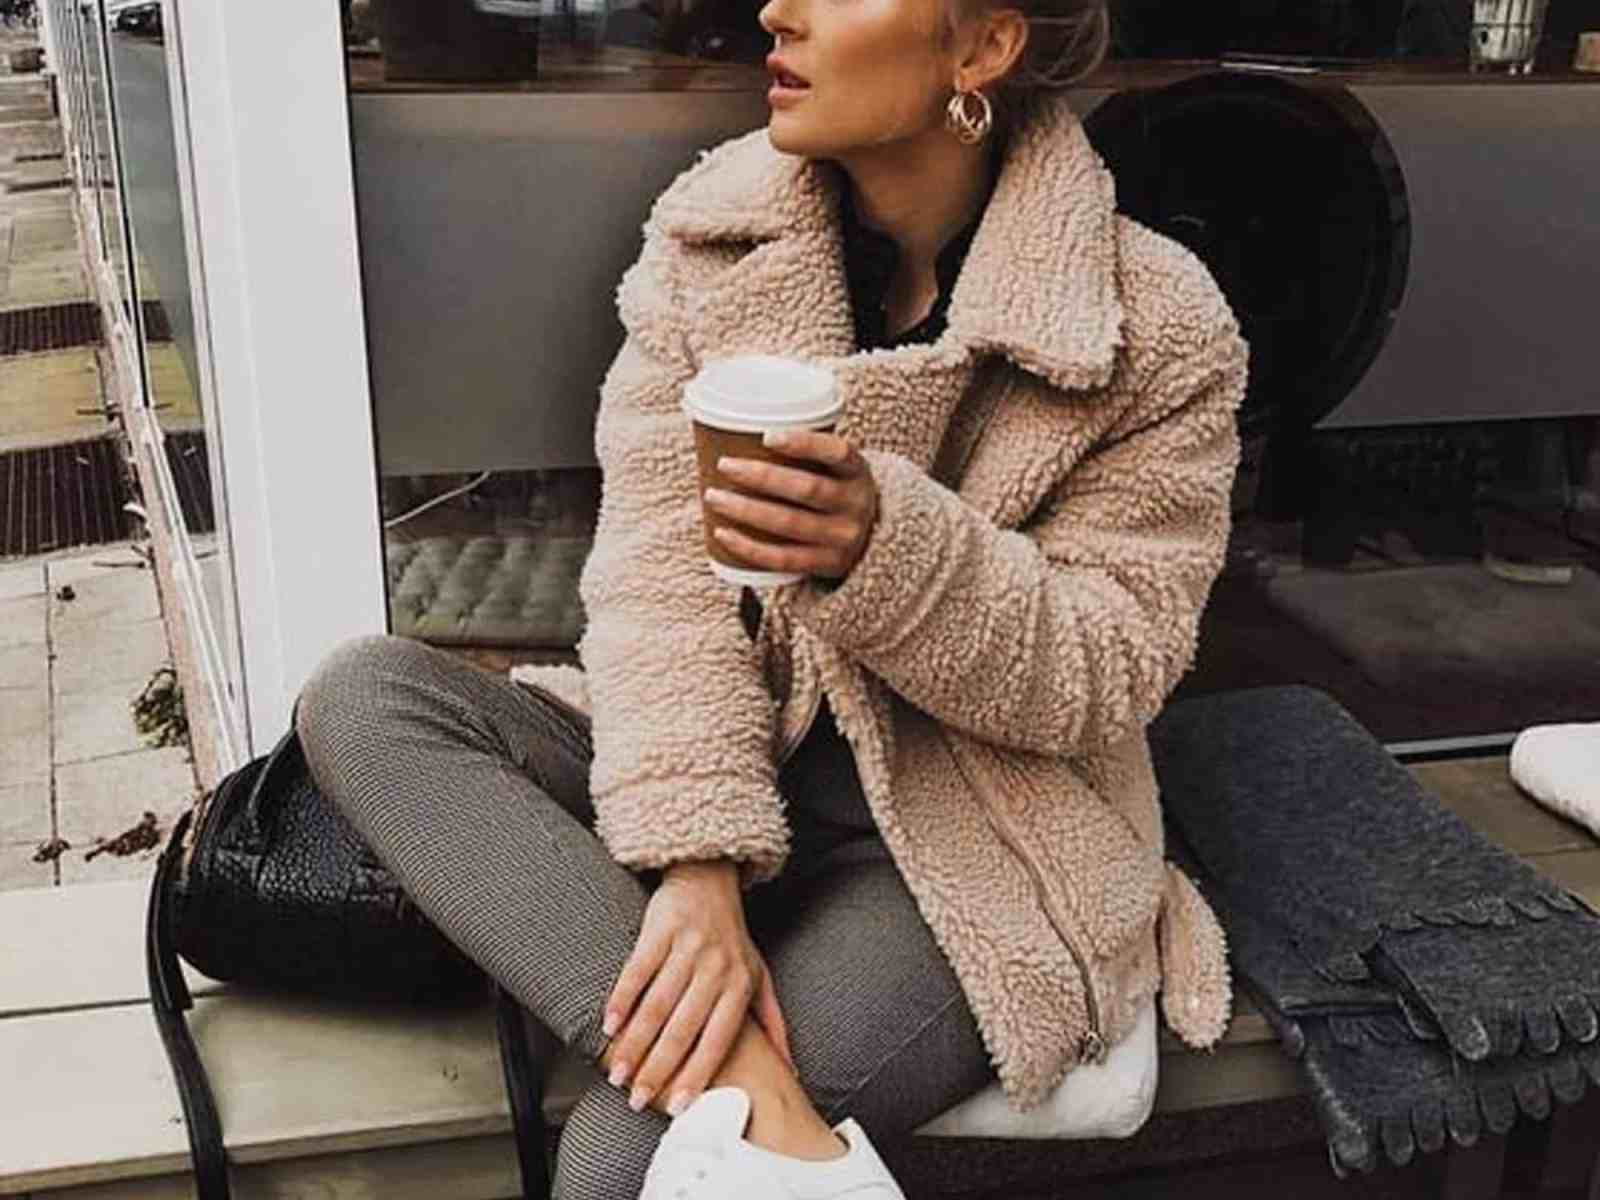 Looking for some warm winter outfits to wear this season? These bloggers show us what winter style is really like with these cold weather outfit pics!